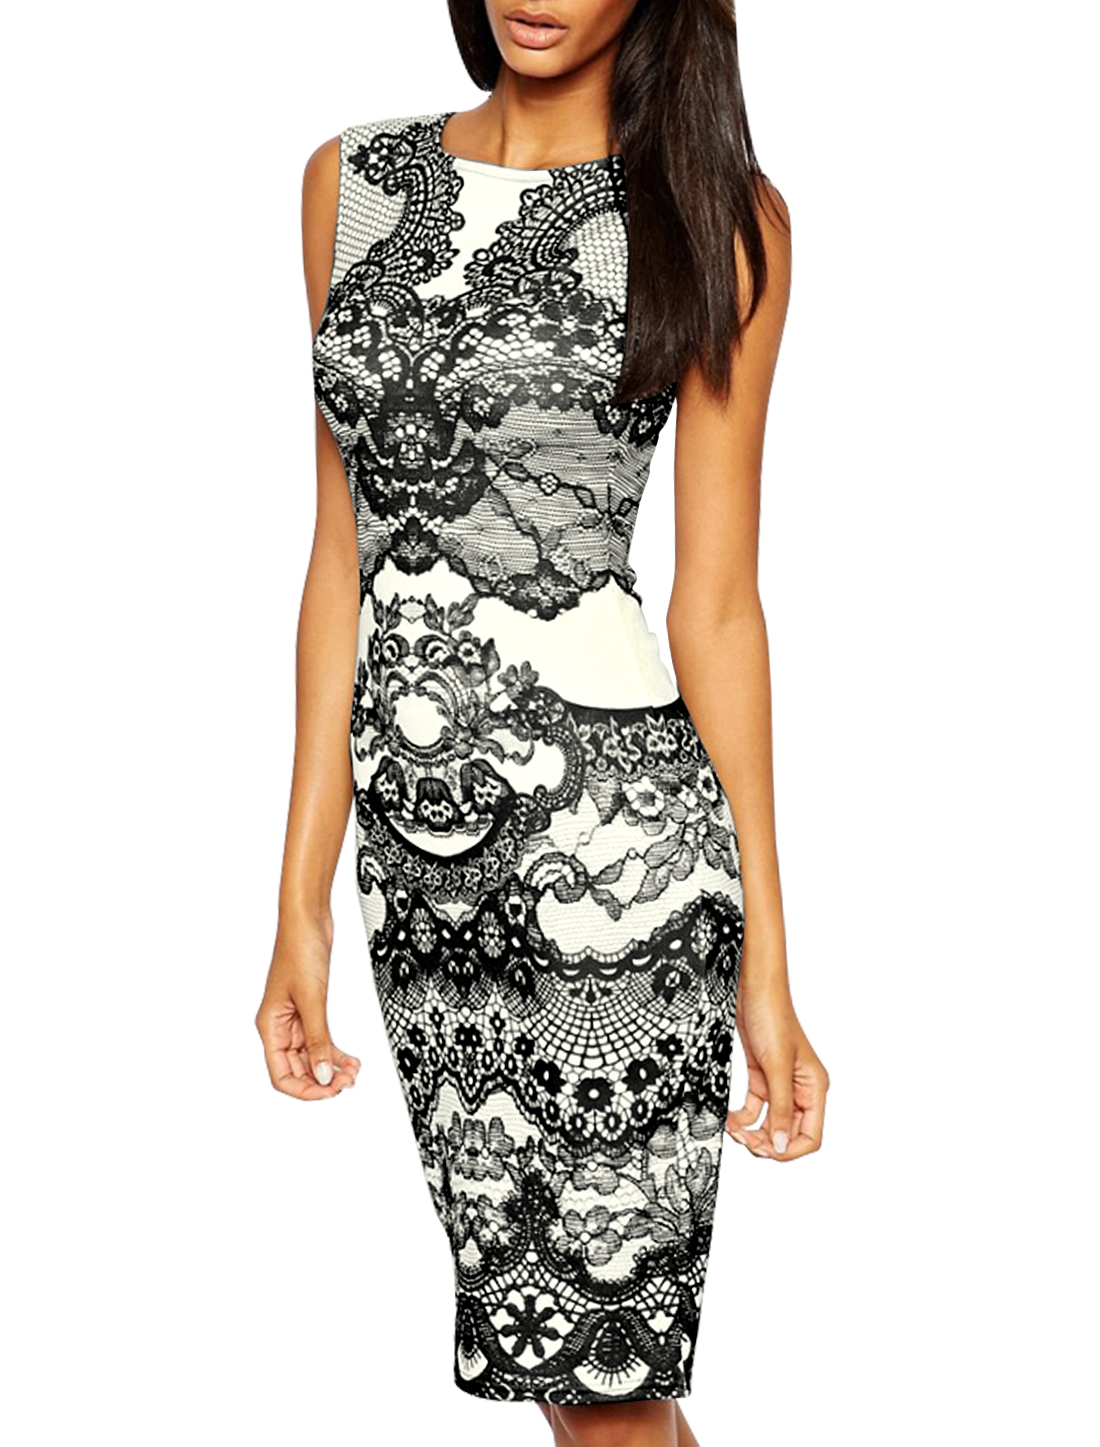 Women Crew Neck Sleeveless Floral Prints Sheath Dress Black M